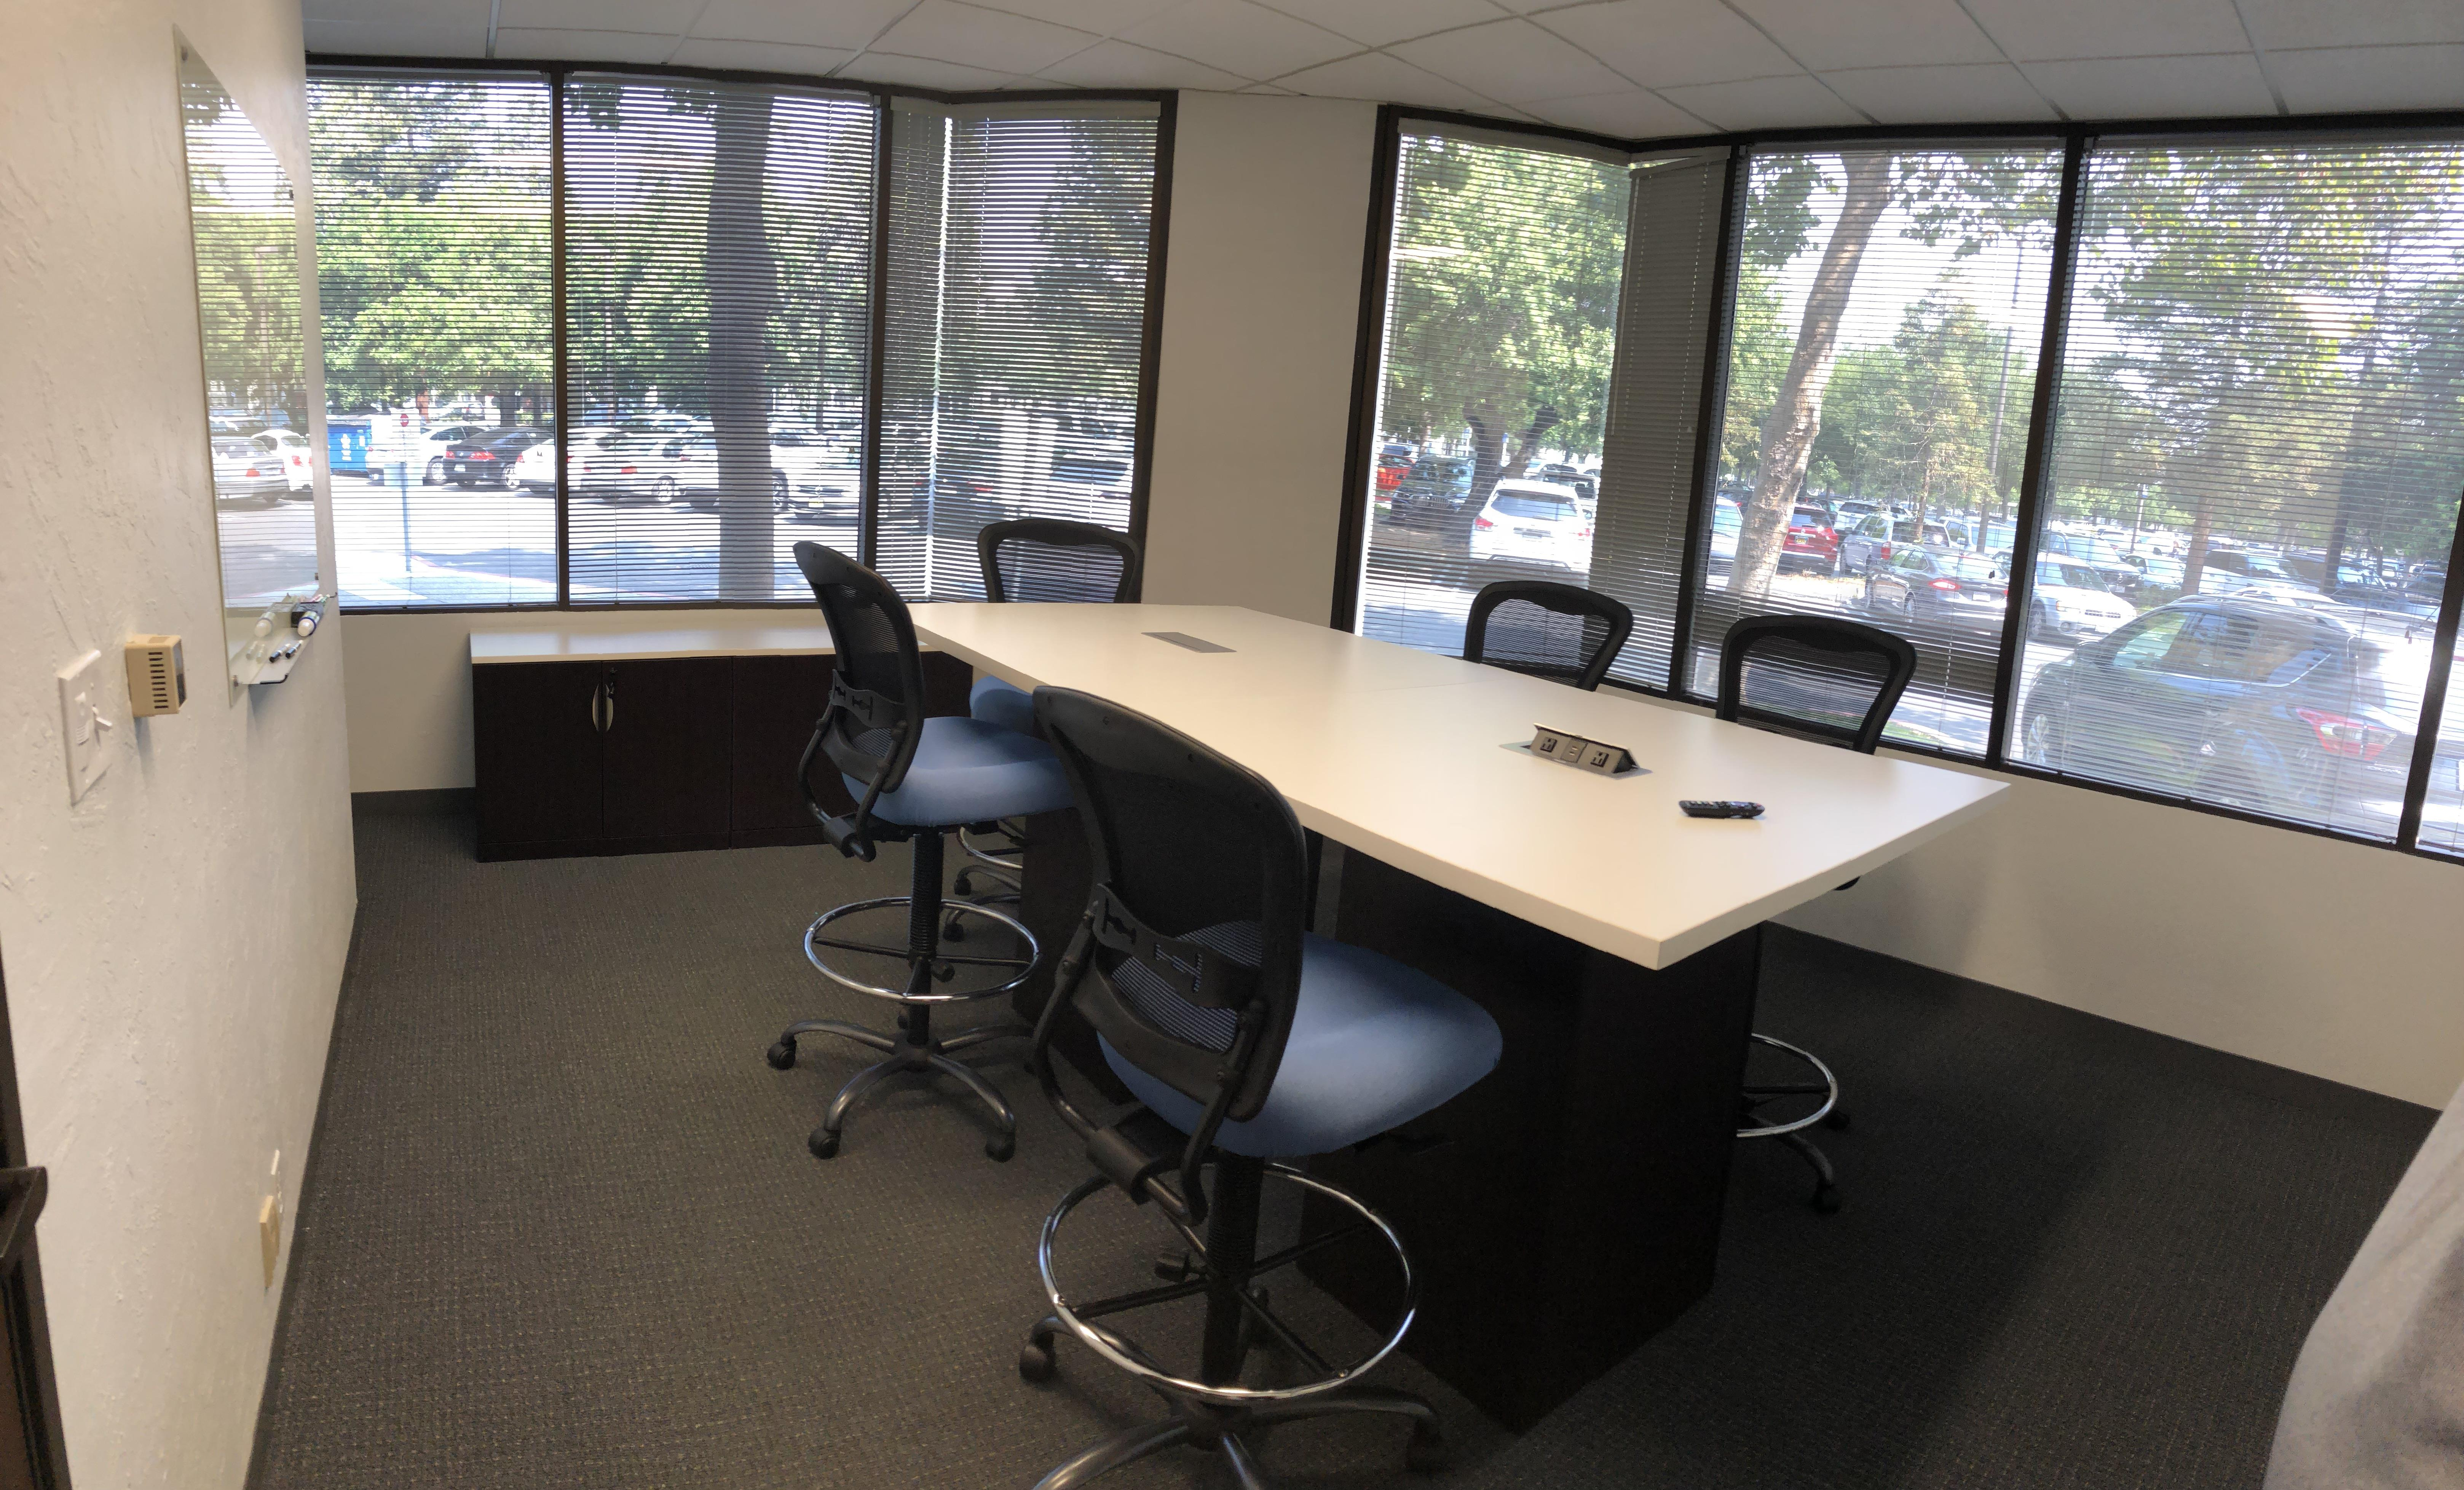 ATS Applied Tech Systems - Suite 120 - Meeting room for 6 people